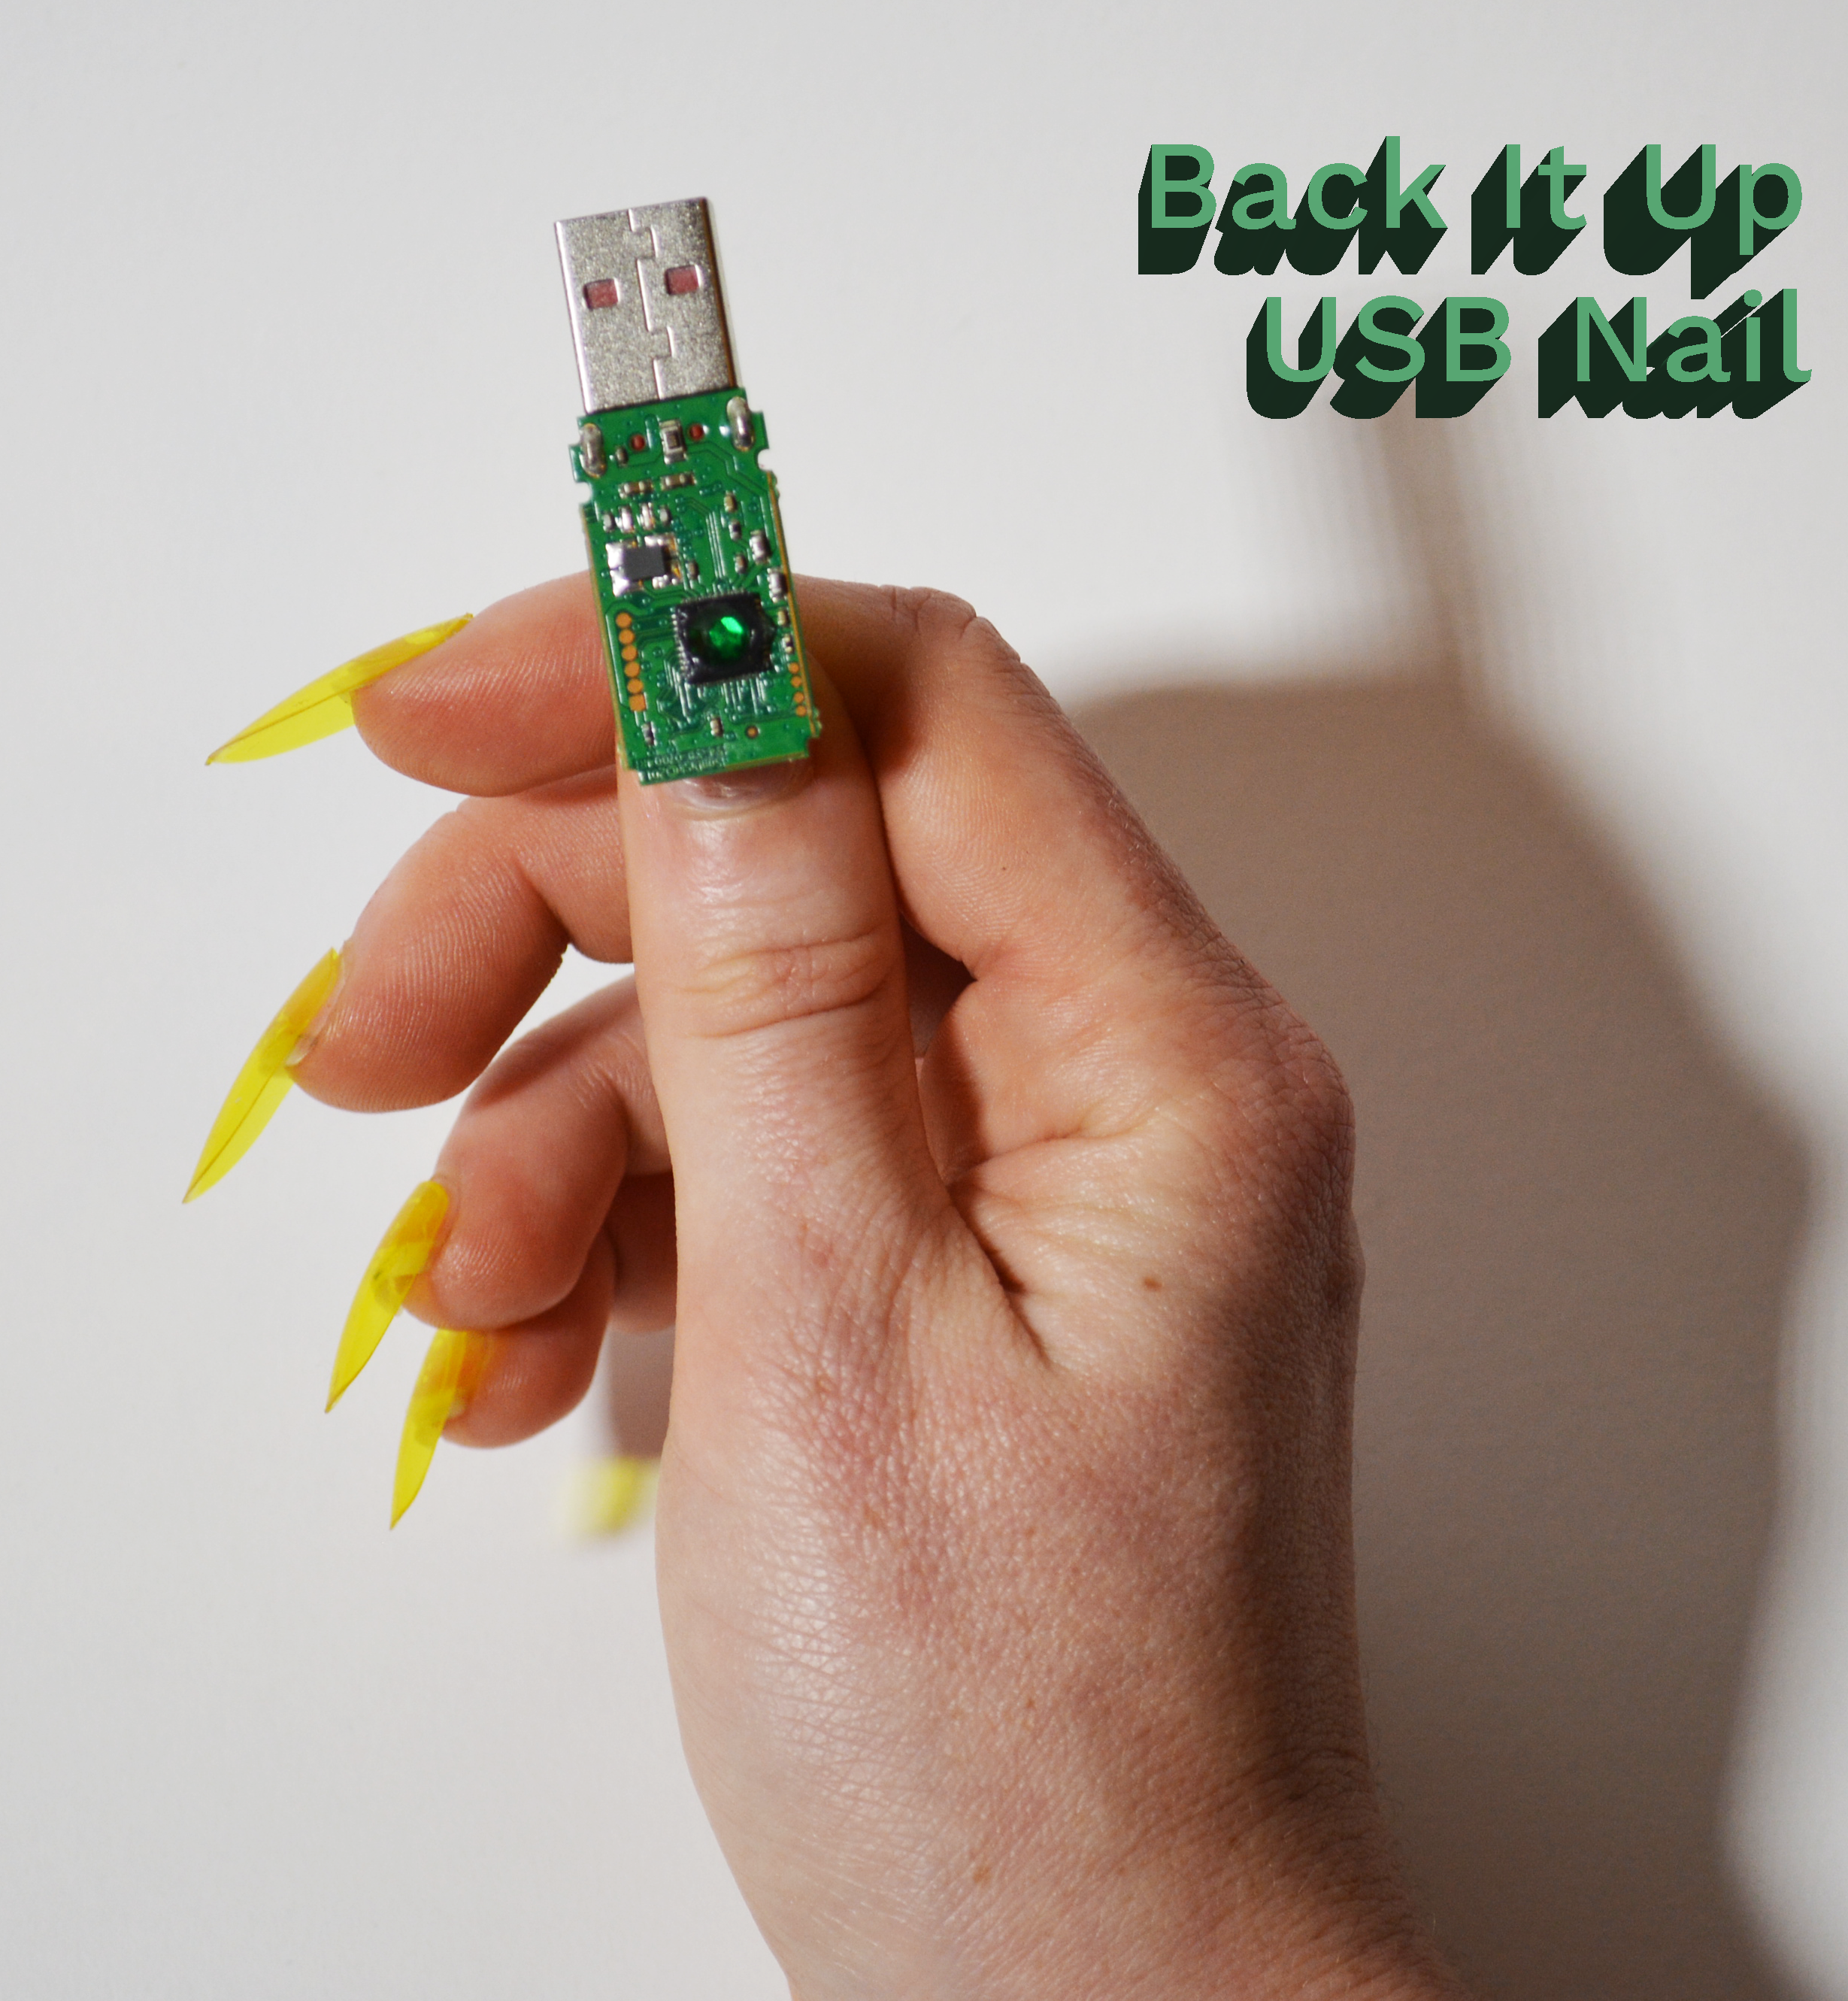 USBNailwithTitle.png